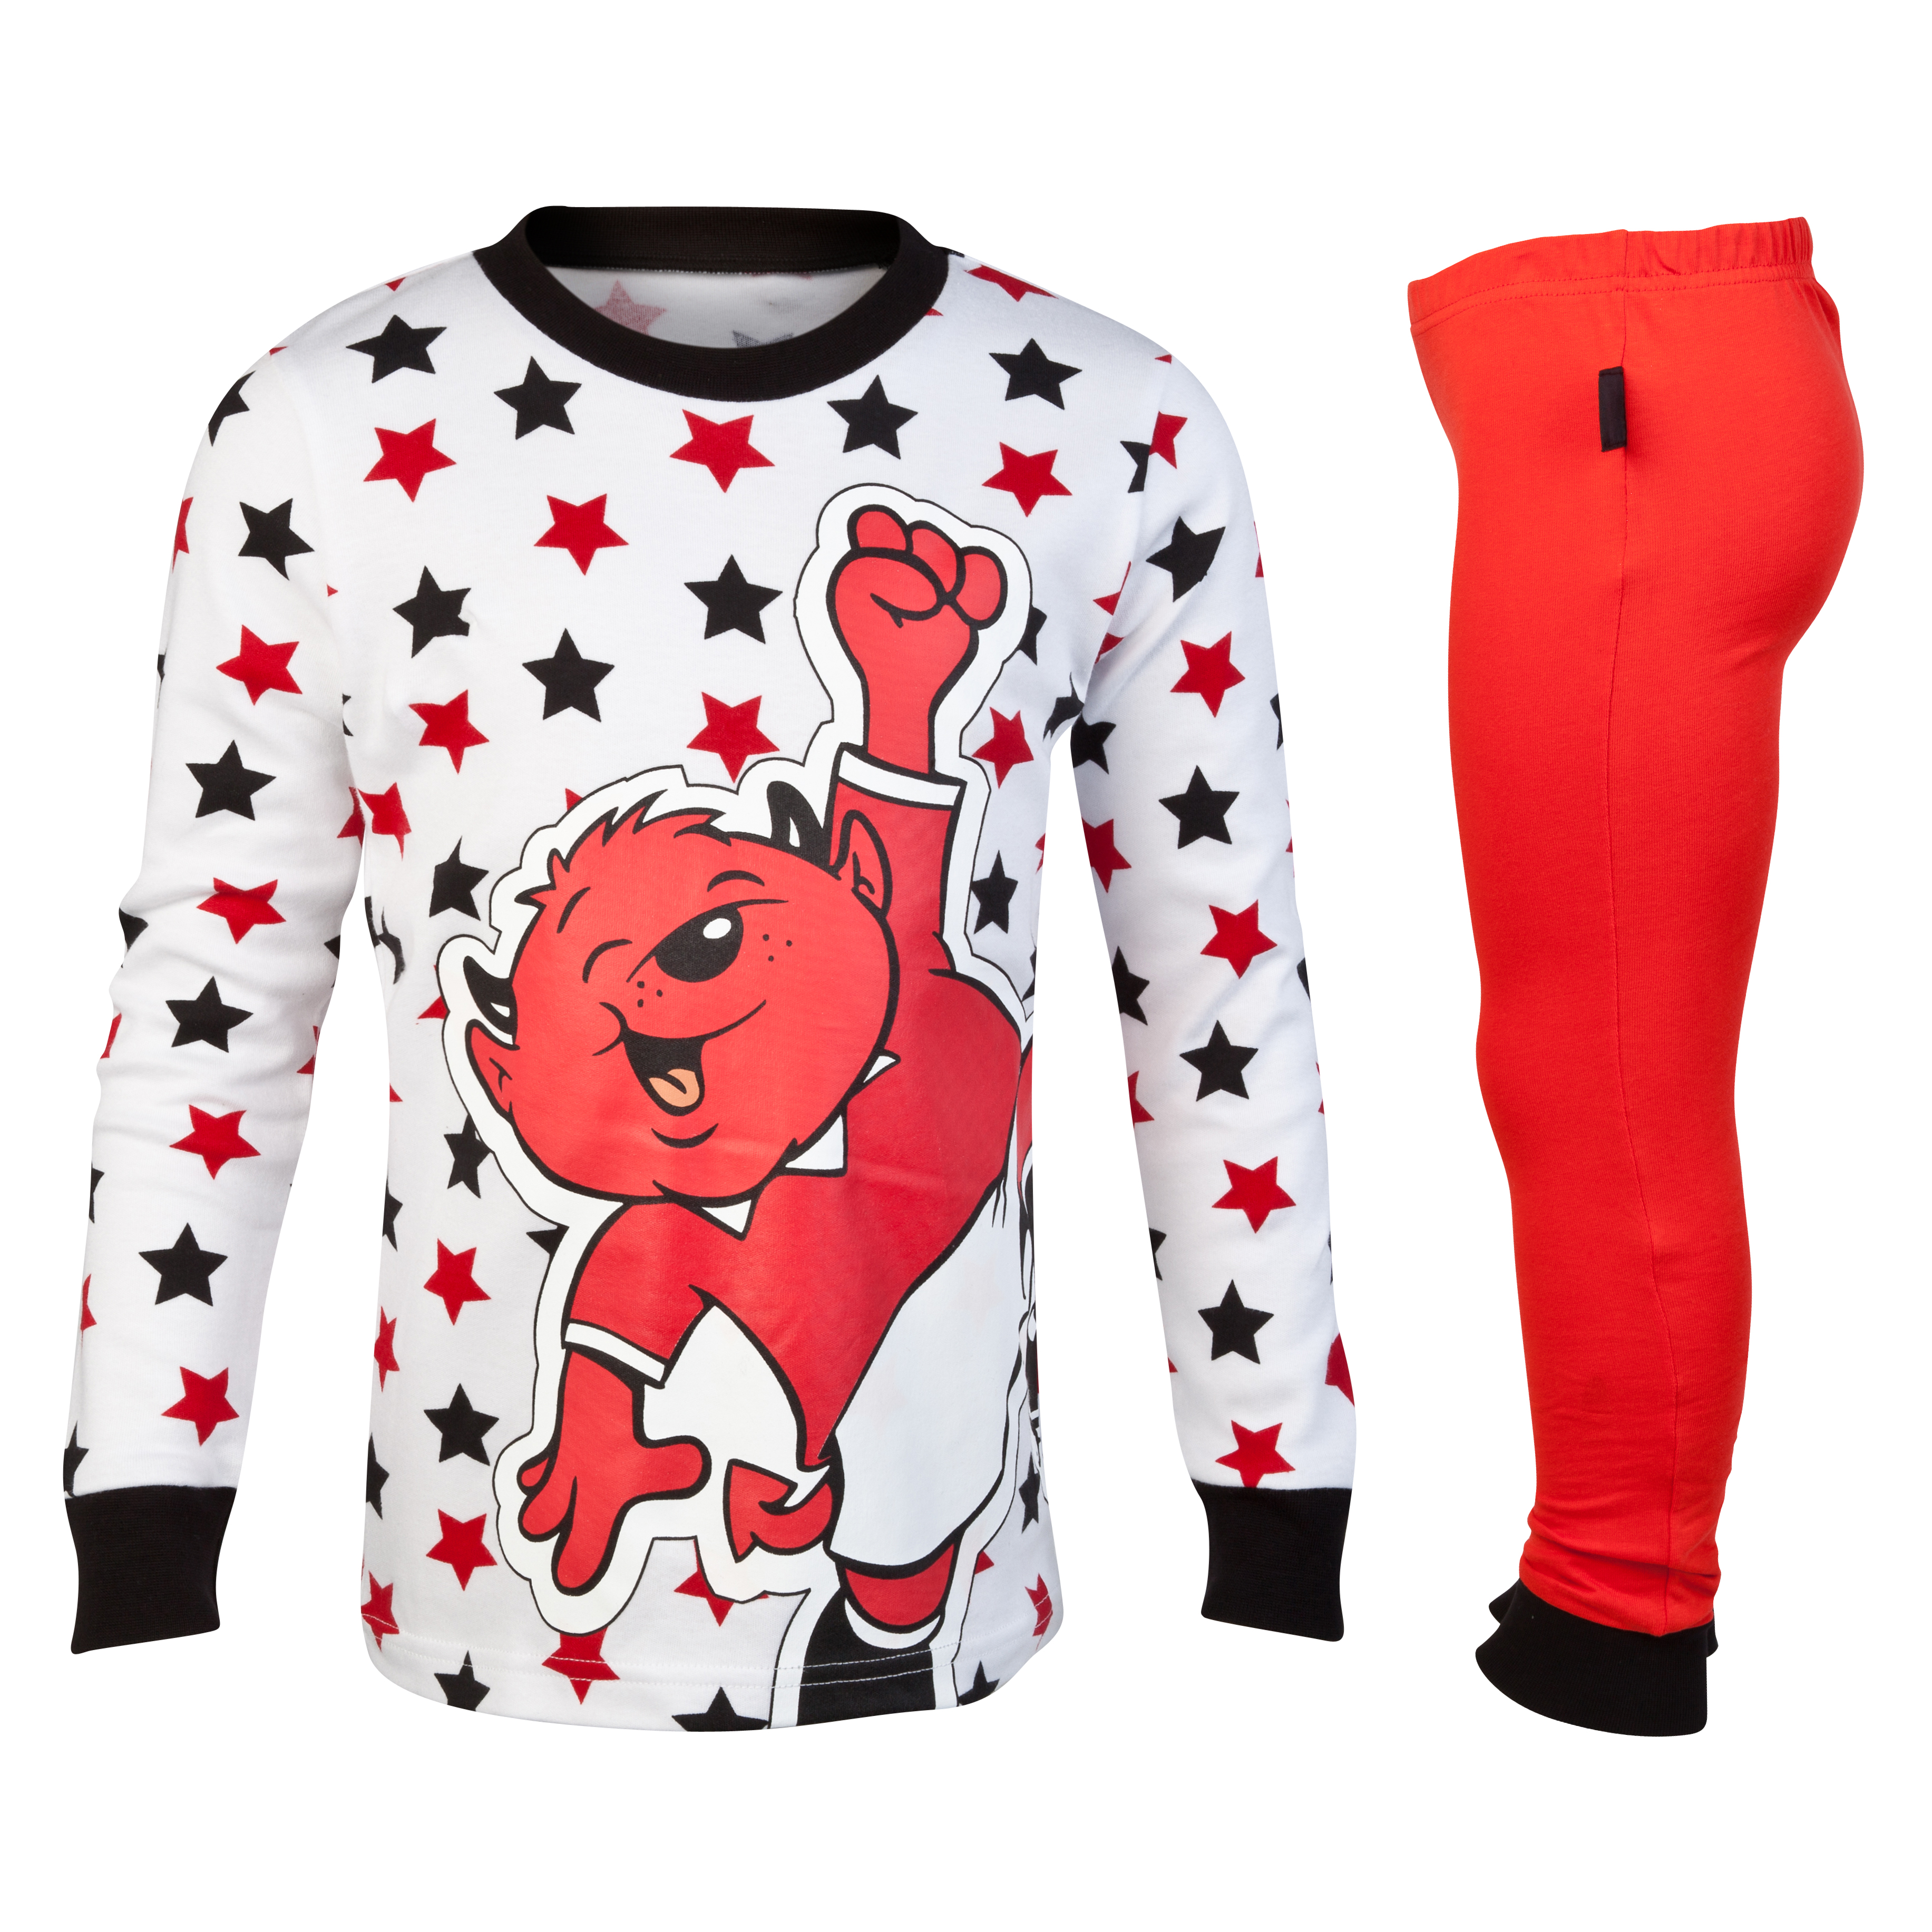 Manchester United Fred The Red Star Snuggle Fit Pyjamas - Red/Black/White - Infant Boys